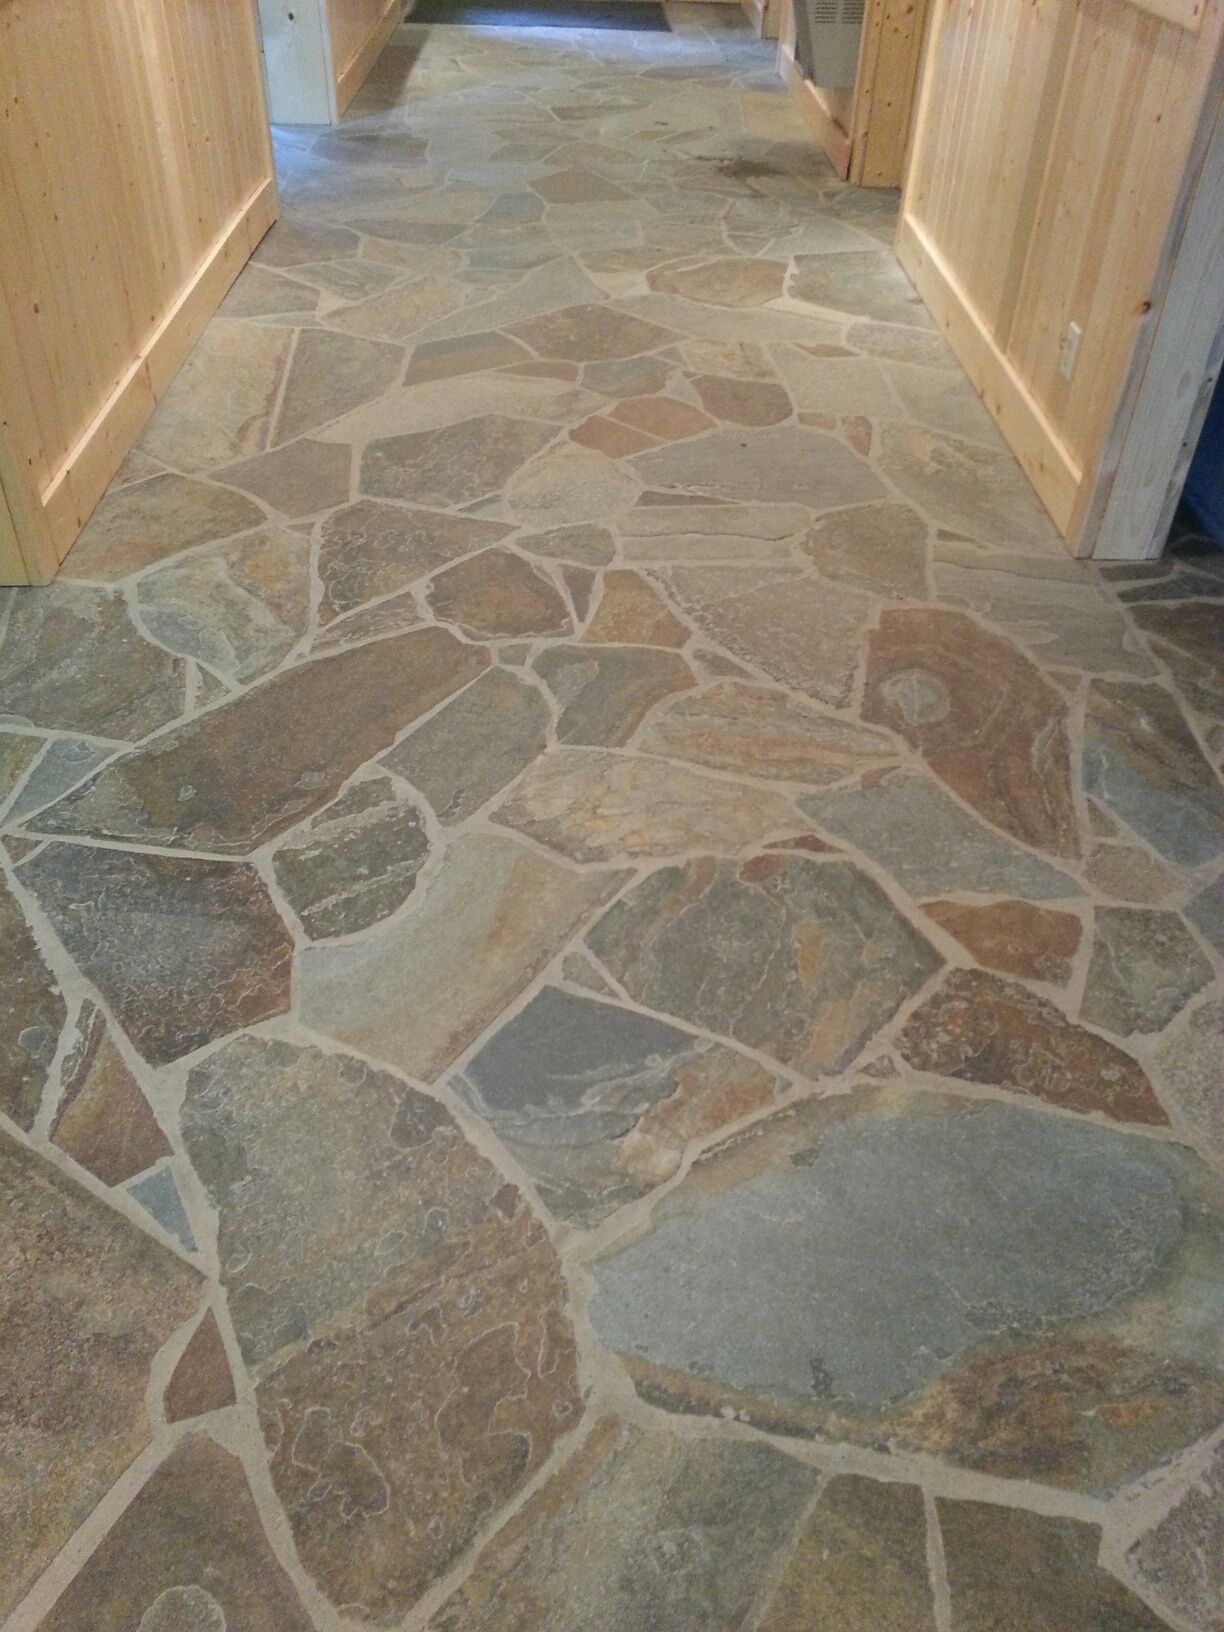 Stone fabrication installation scrivanich natural stone entry accessories furniturestunning natural flagstone floor tile for corridorbest inspiring natural stone floor tile to decorated your floor dailygadgetfo Choice Image